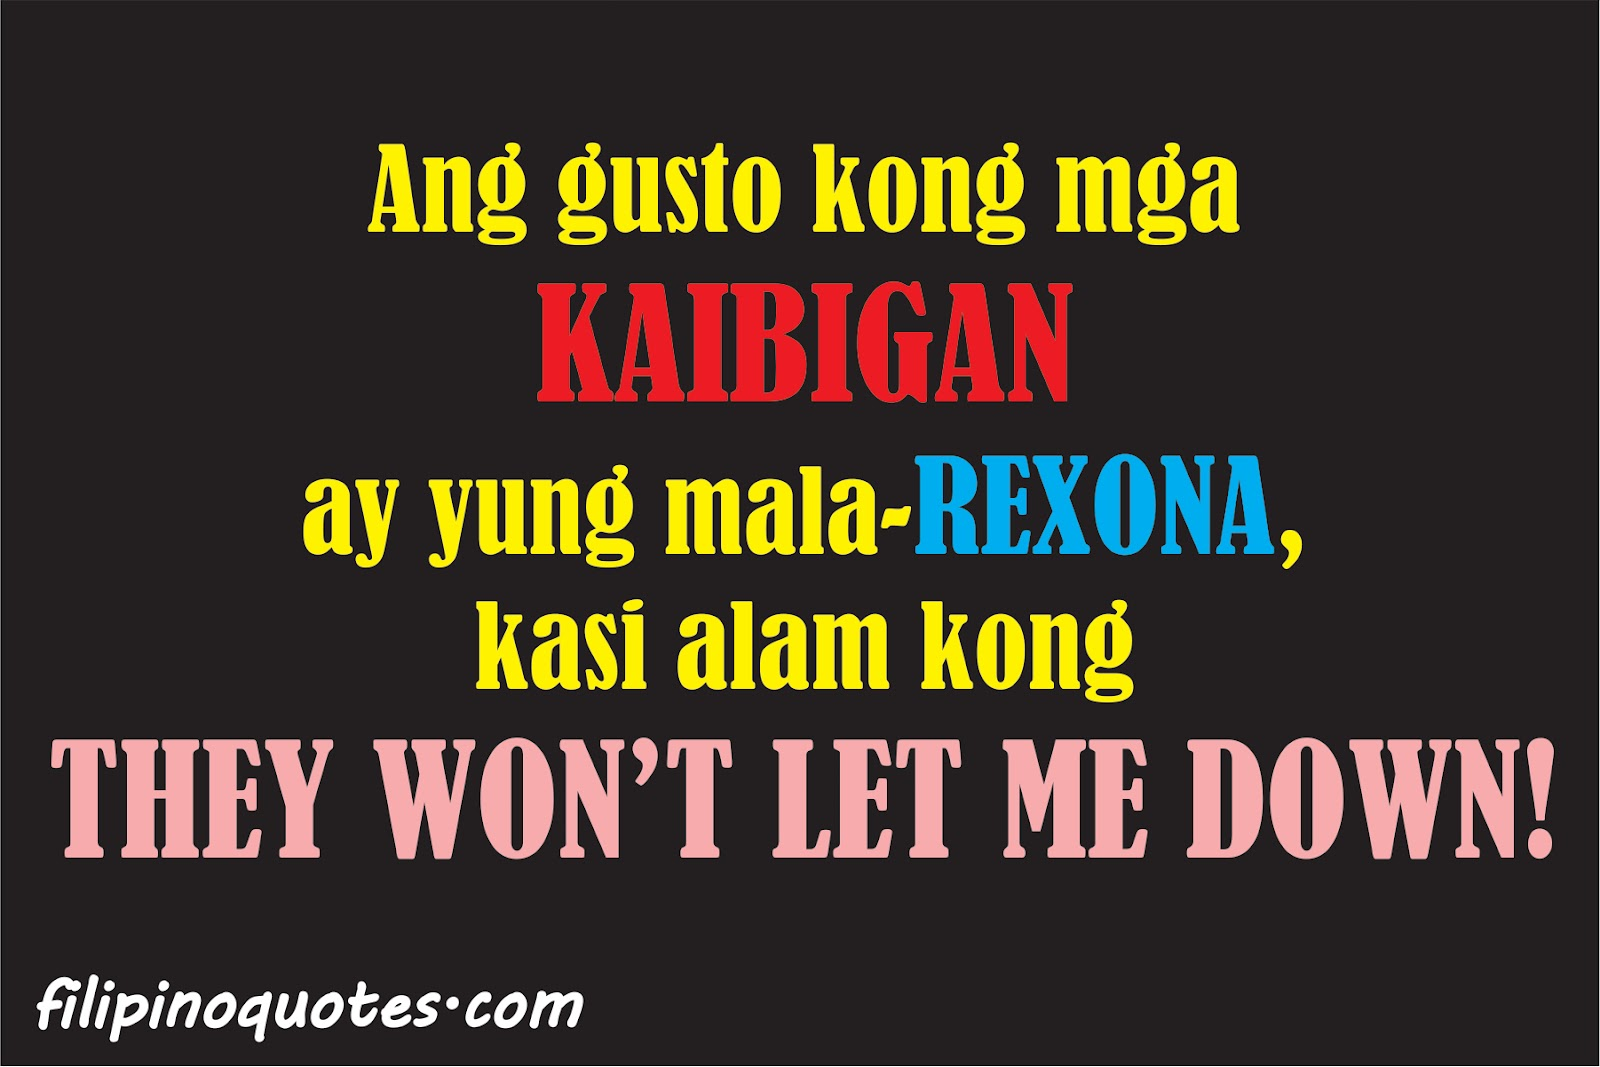 Quotes About Tagalog Friendship Kaibigan Quotes...